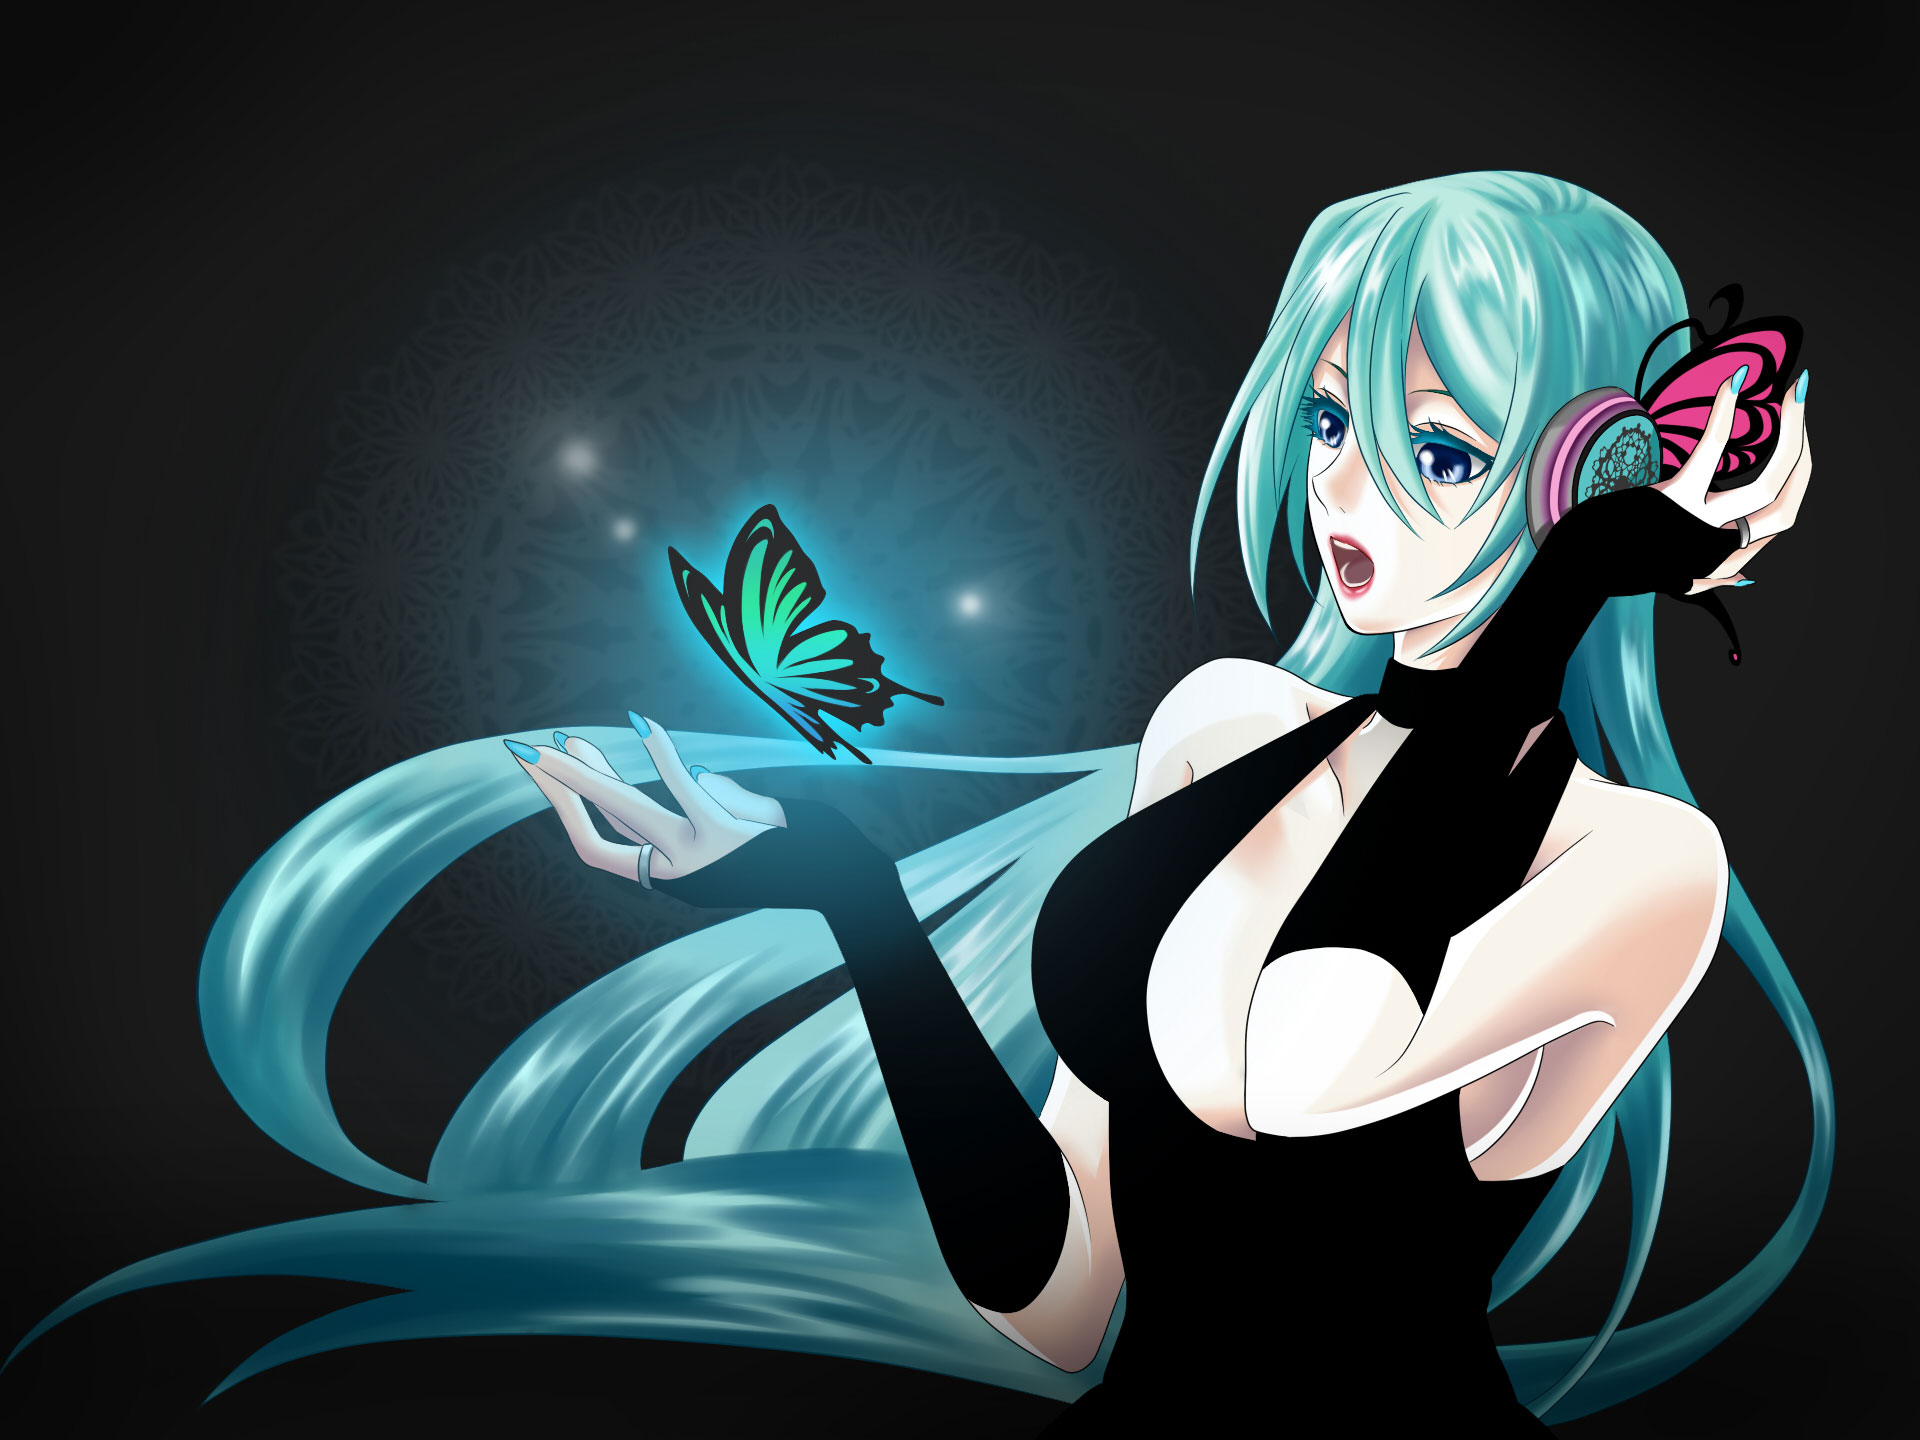 anime girl hd wallpaper 1080p wallpapersafari